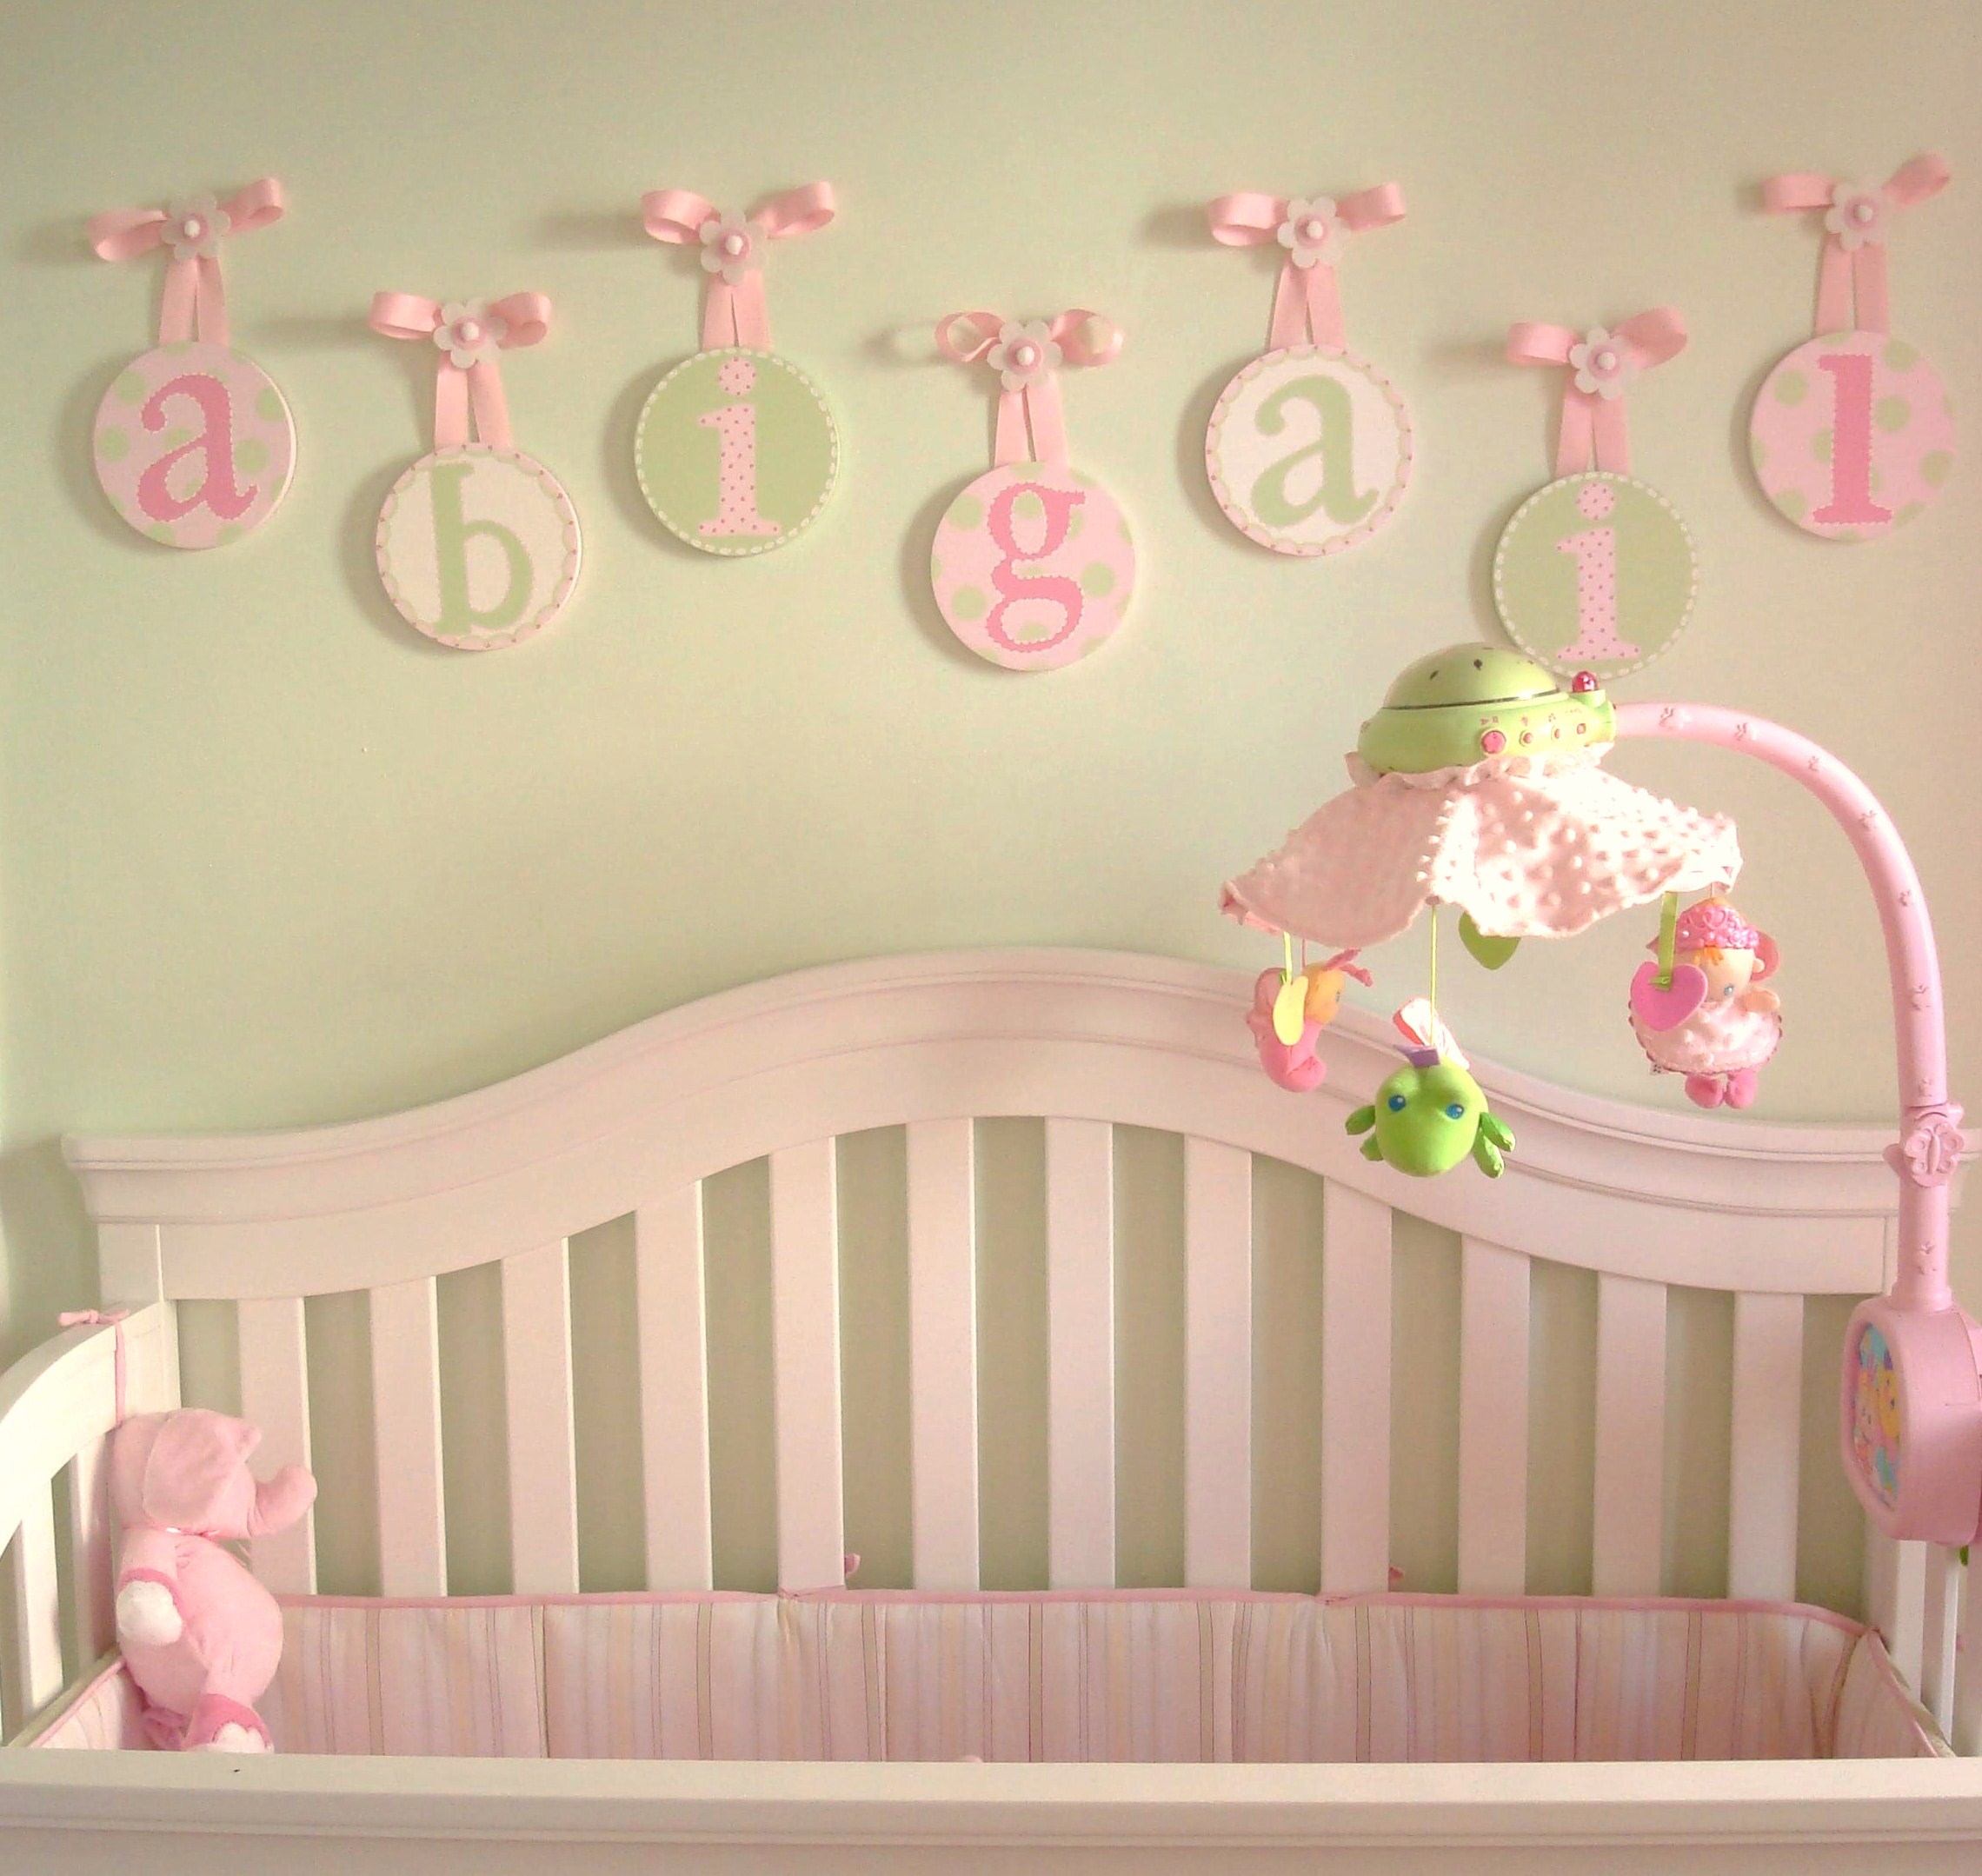 Hanging letters for Baby girl room decoration